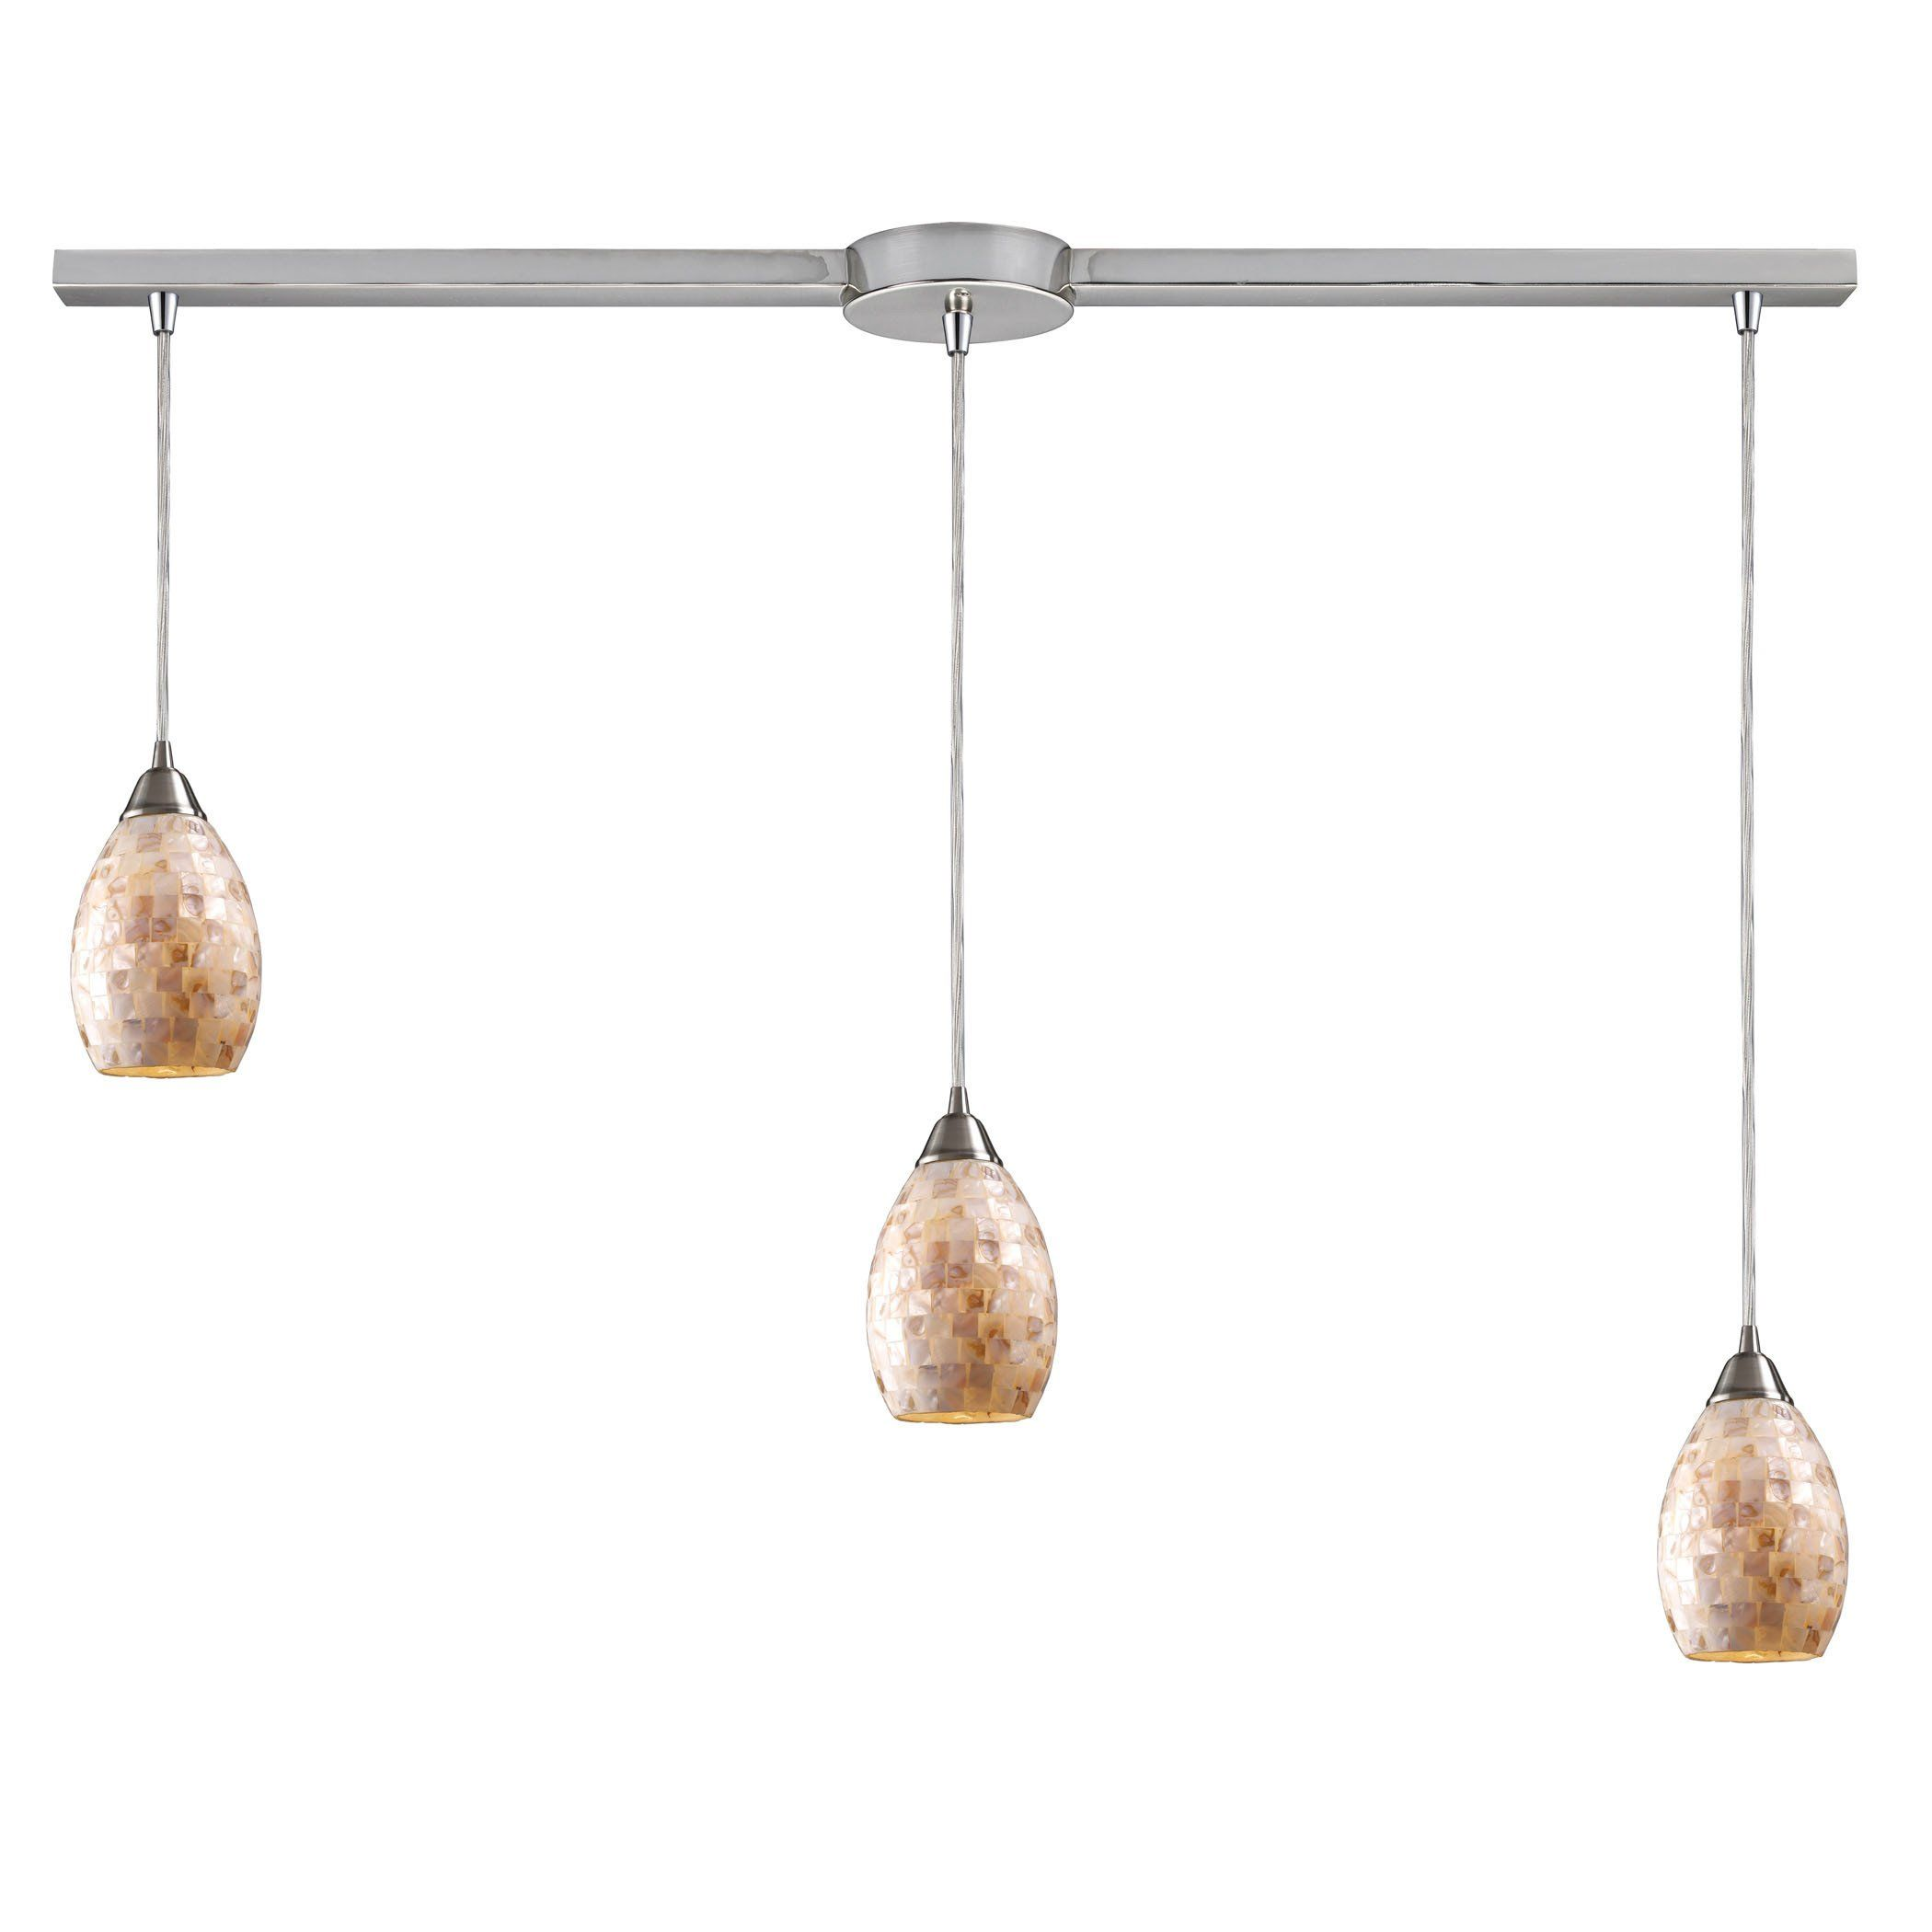 Capri light pendant in satin nickel and capiz shell products